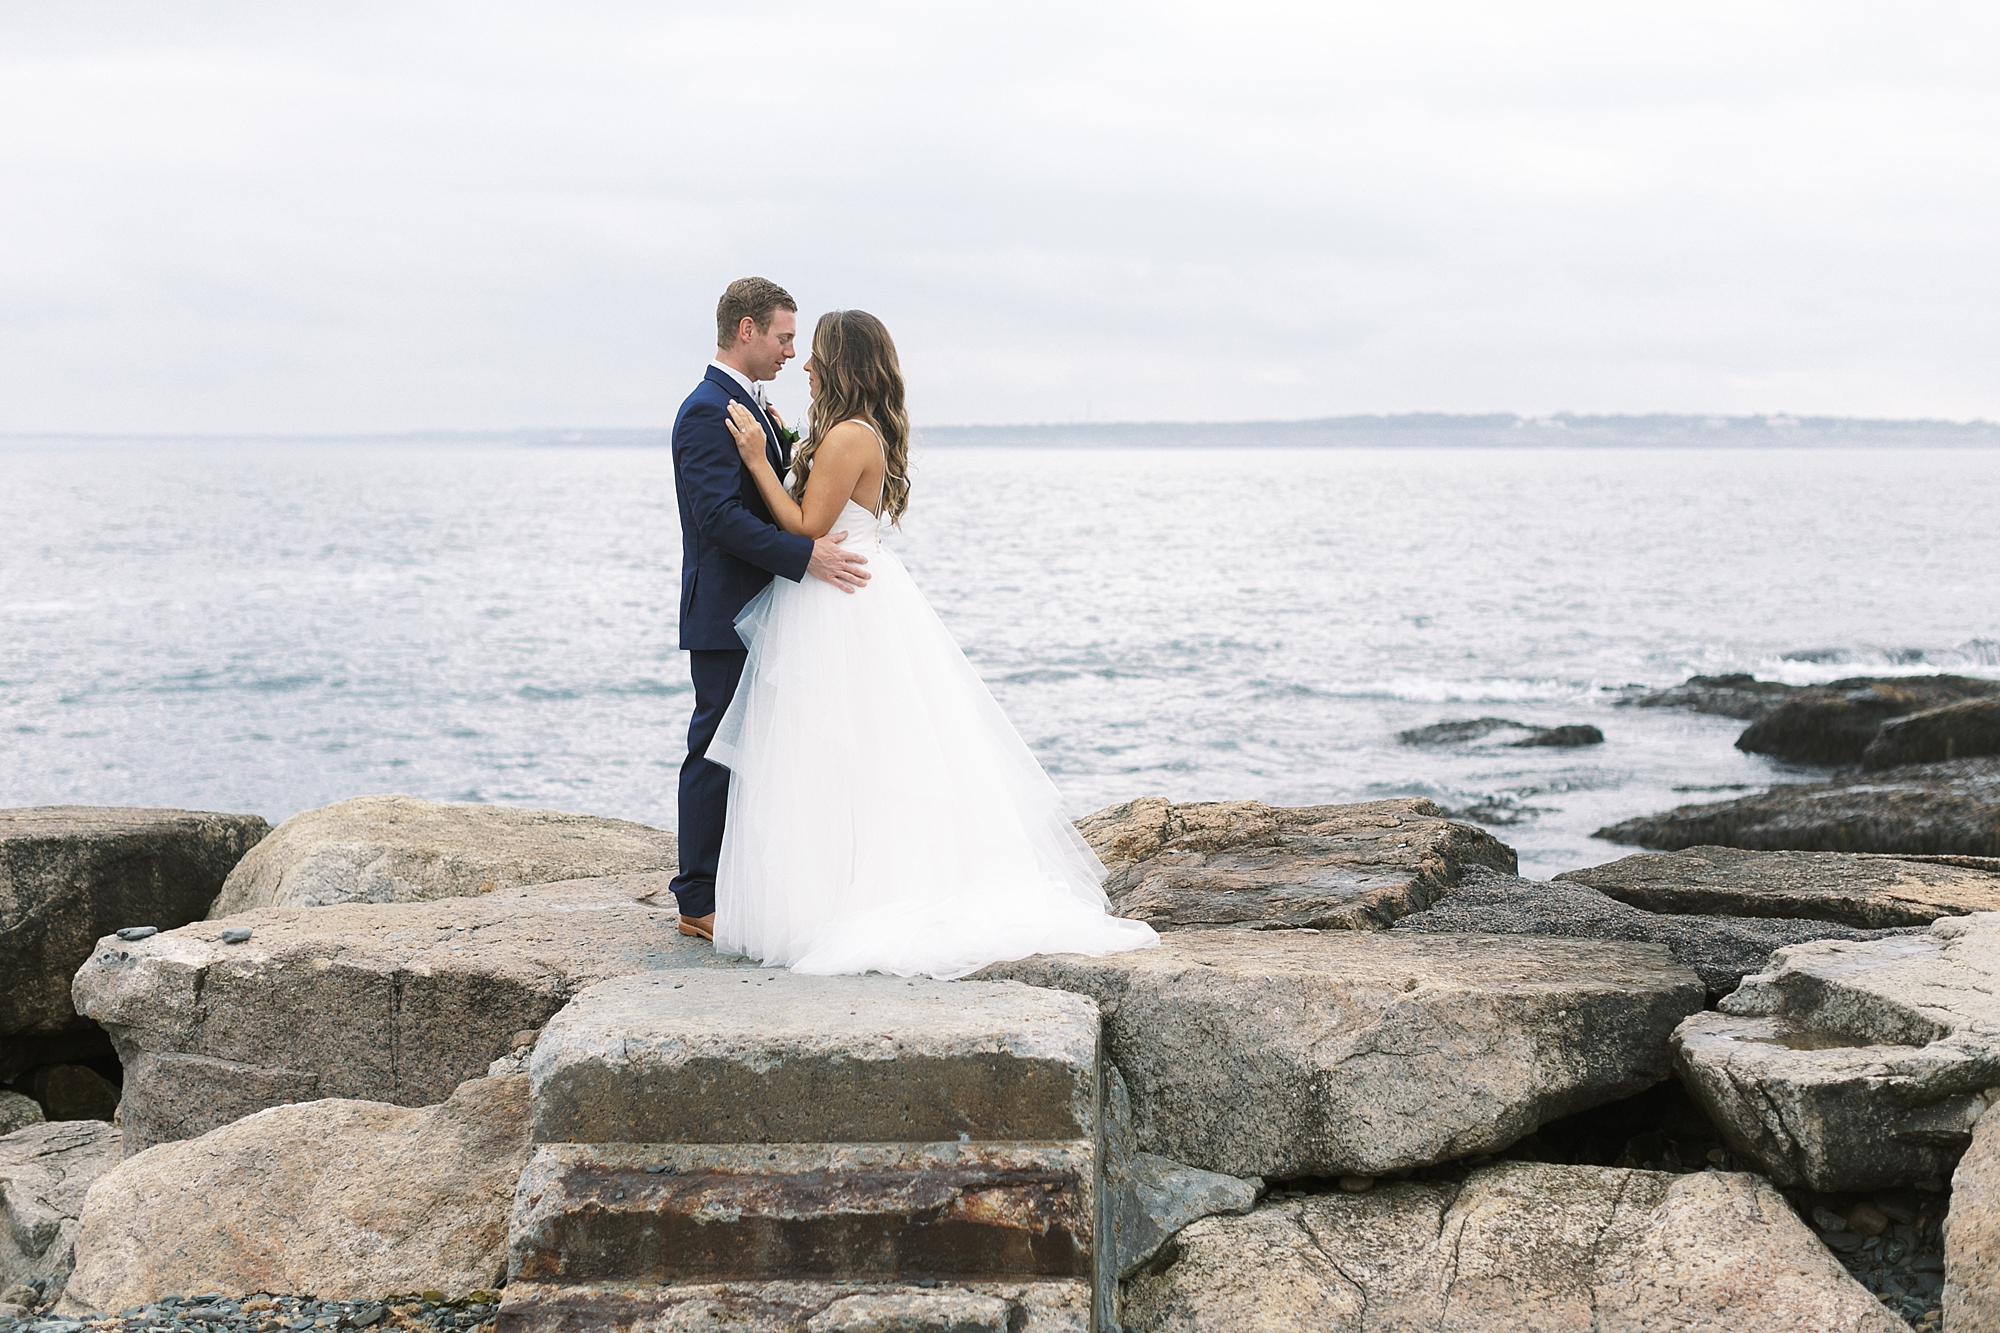 Coastal and Authentic Film Wedding Photography in Newport Rhode Island by Magdalena Studios 0025